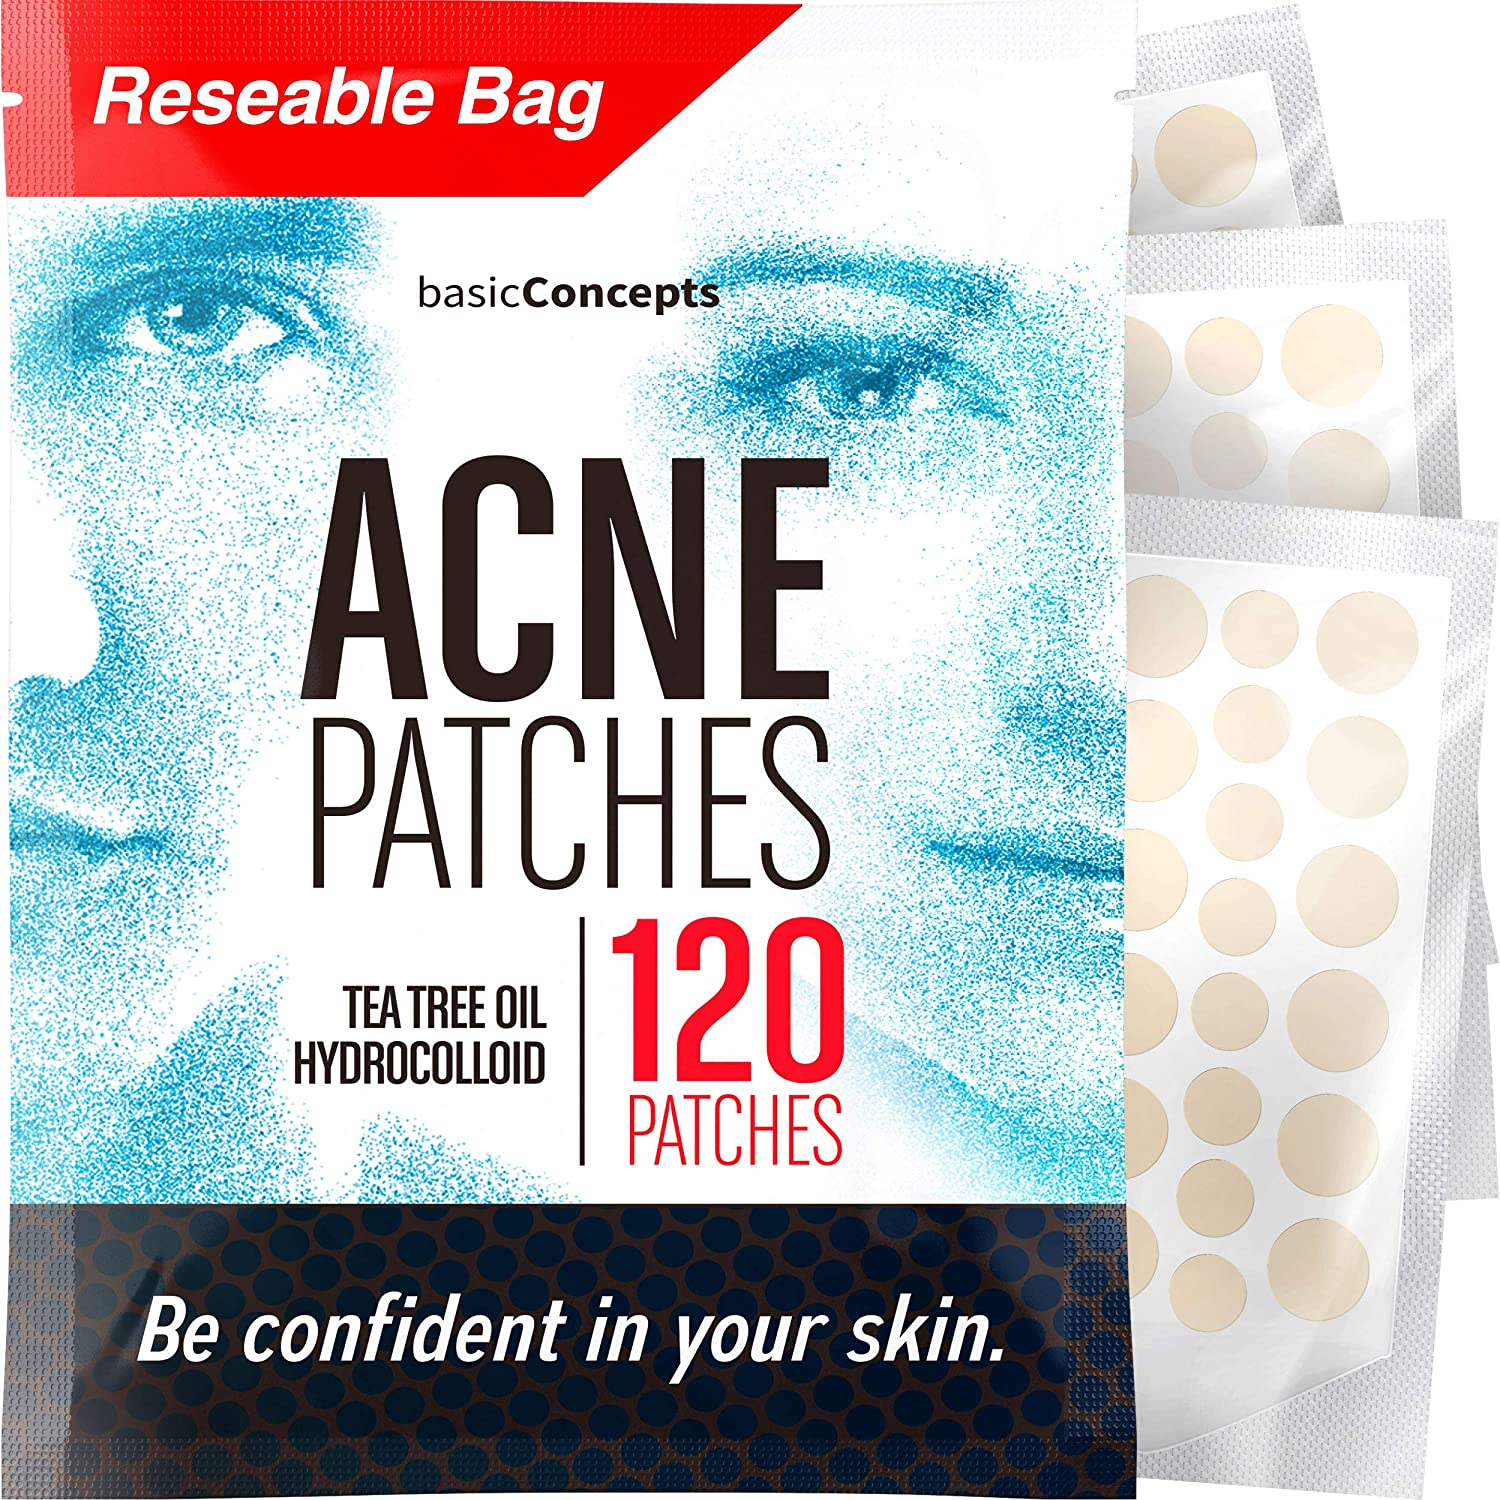 Acne Patches (120 Pack), Tea Tree Oil and Hydrocolloid Pimple Patches for Face, Zit Patch (3 Sizes), Blemish Patches, Acne Dots, Pimple Stickers, 100% All Natural Acne Patch and Pimple Patch